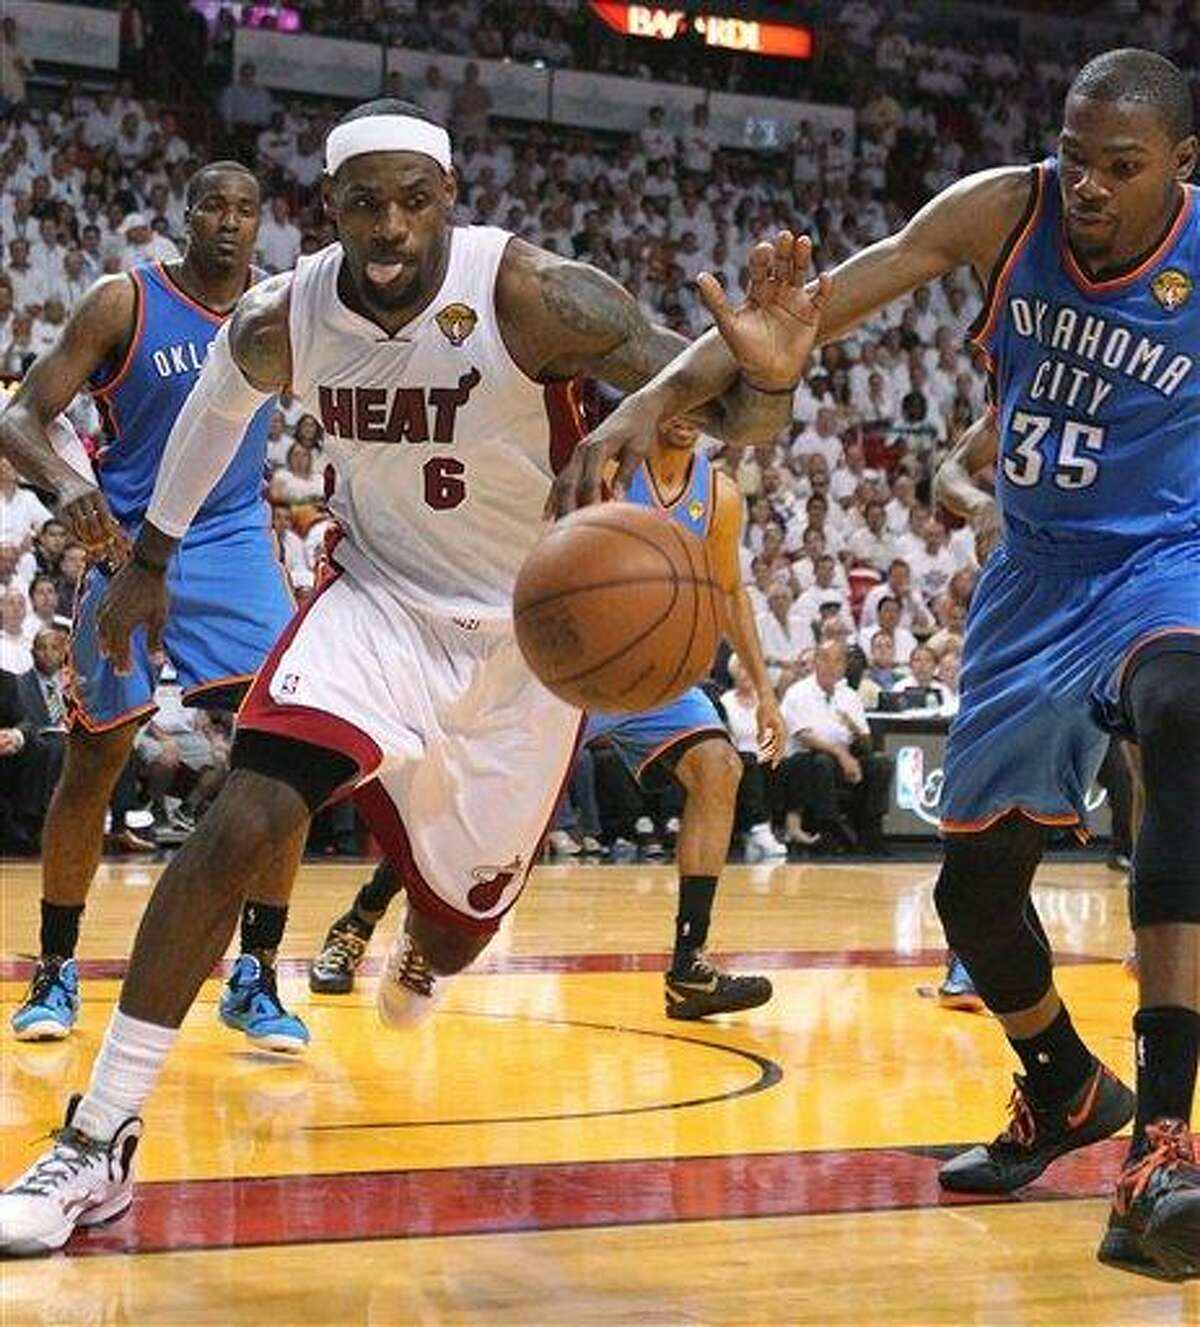 LeBron James battle for a lose ball against Kevin Durant during the third quarter of game 5 of the NBA Finals between the Oklahoma City Thunder against Miami Heat Thrusday at the AmericanAirlines Arena in Miami. Associated Press